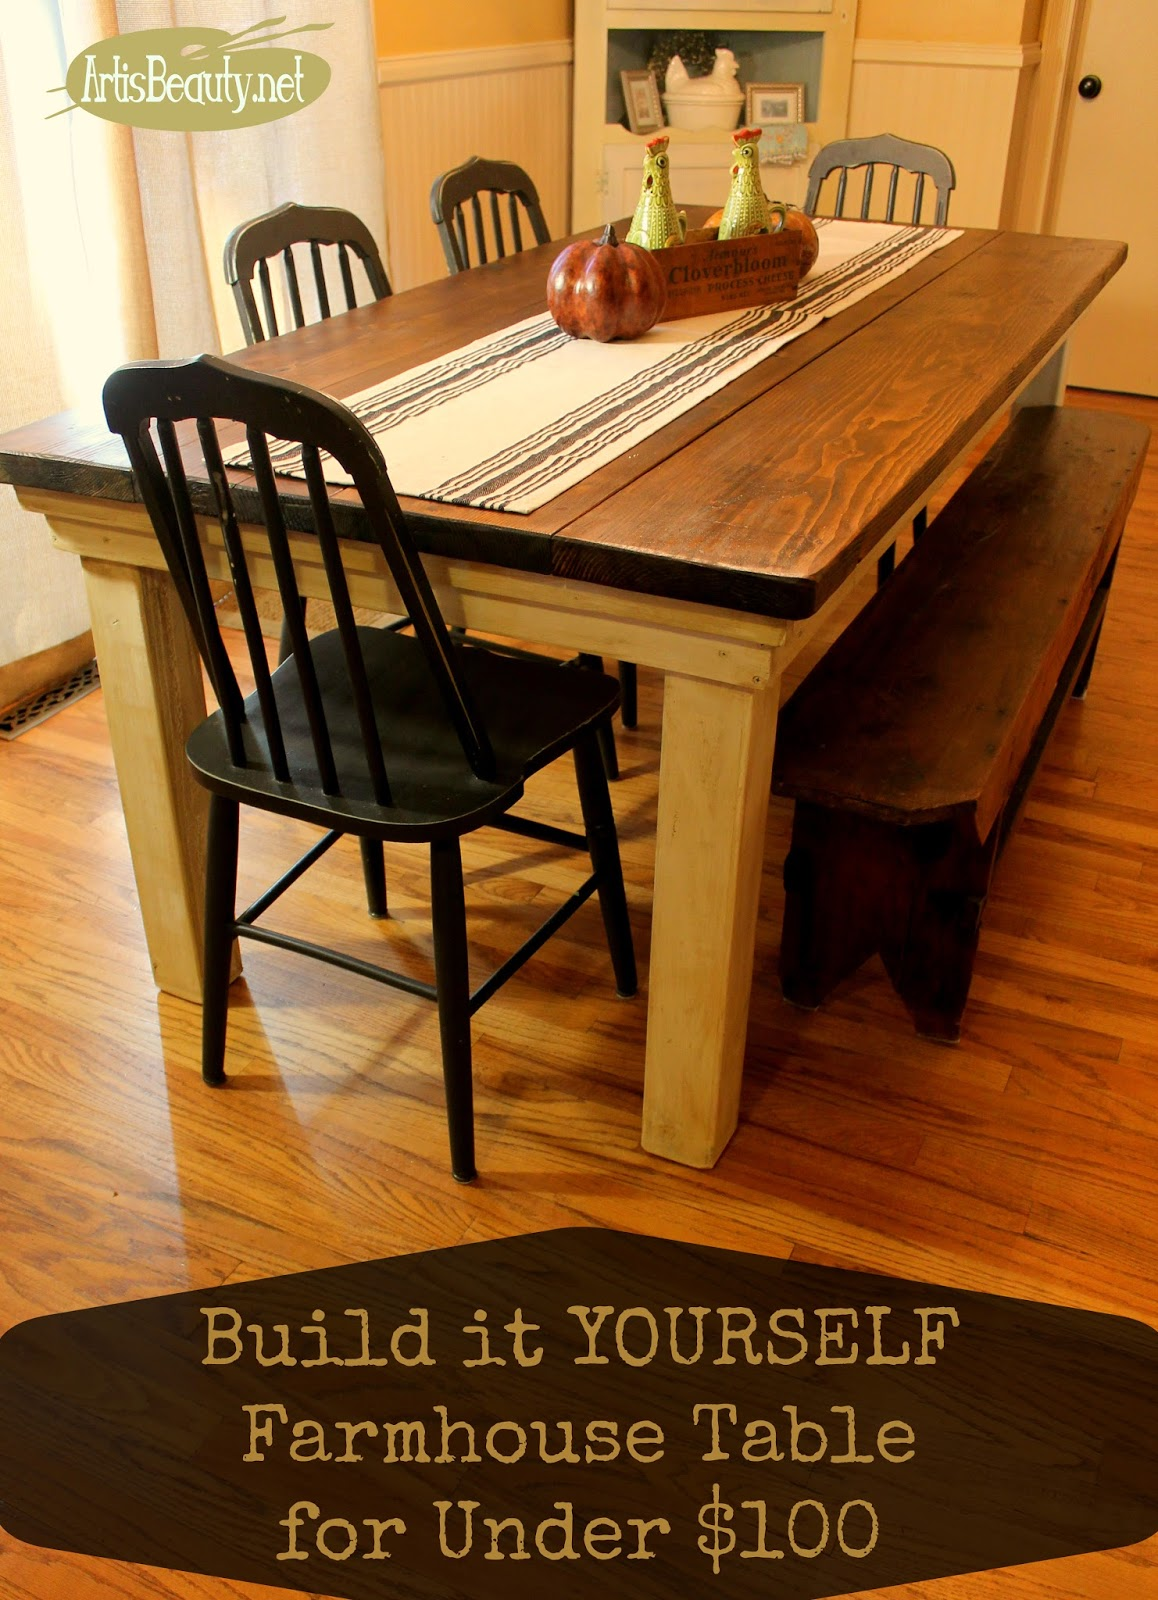 Art is beauty how to build your own farmhouse table for under 100 dzzzfo